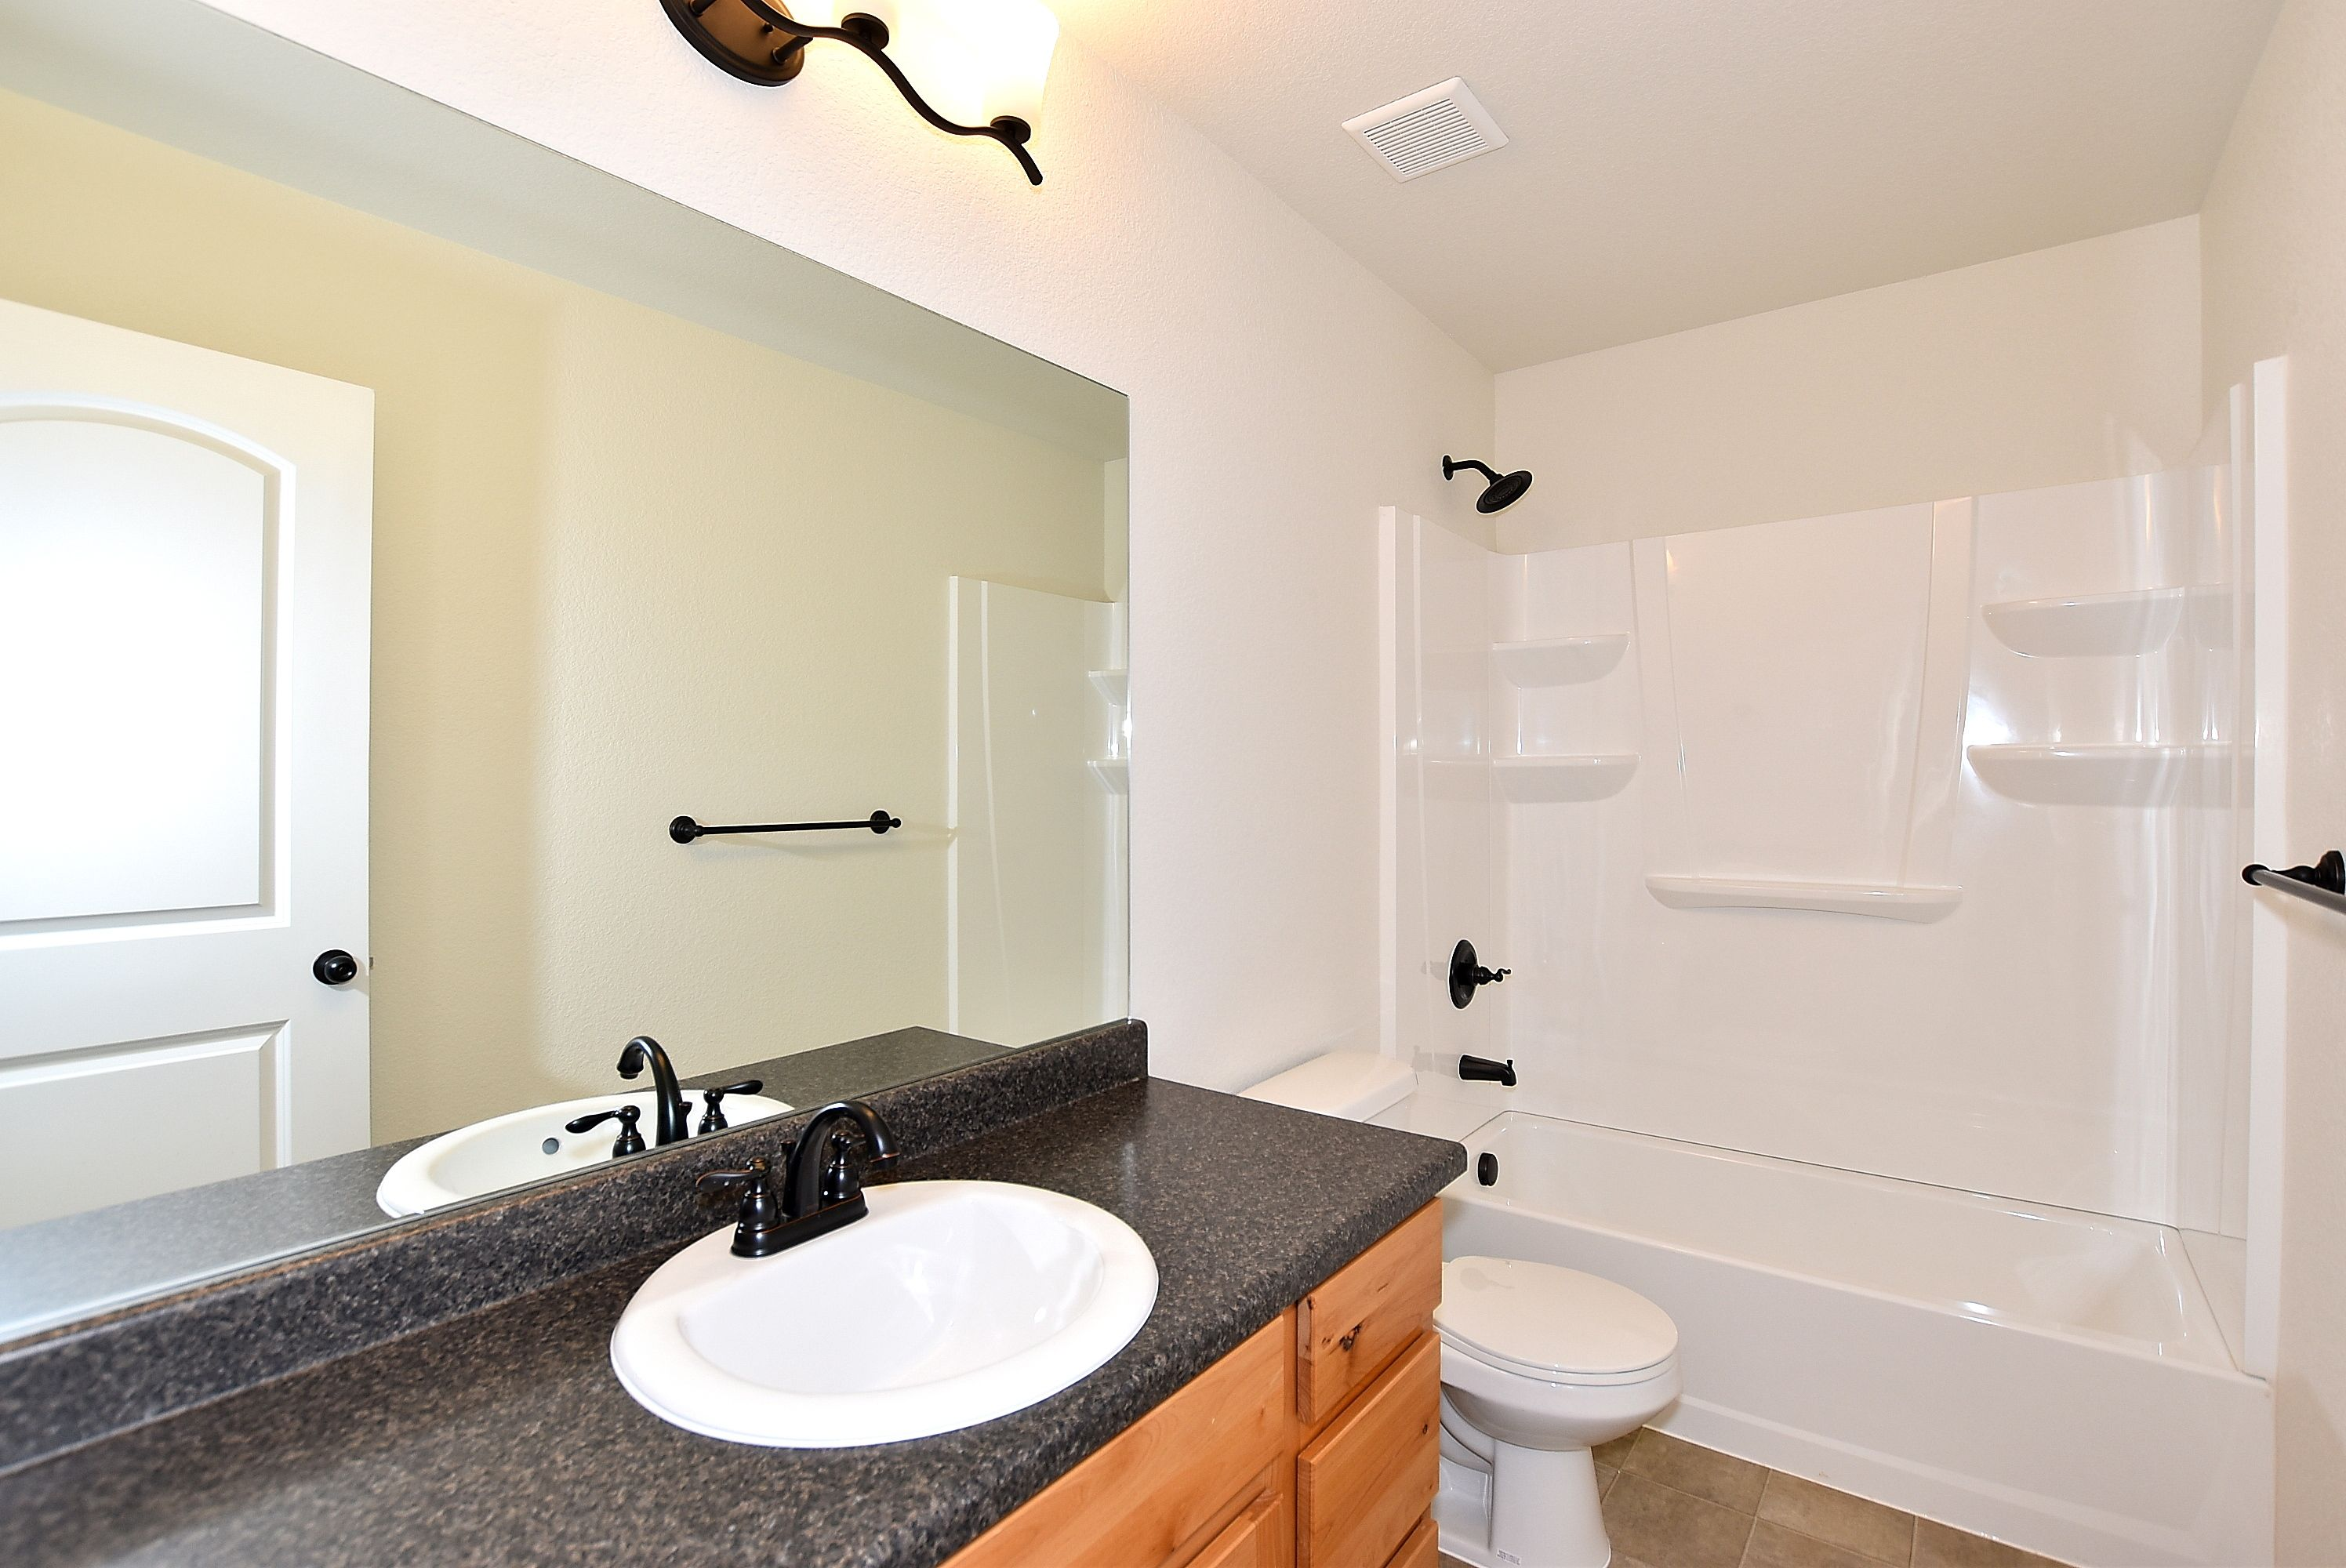 Bathroom featured in the New Jersey By Journey Homes in Greeley, CO